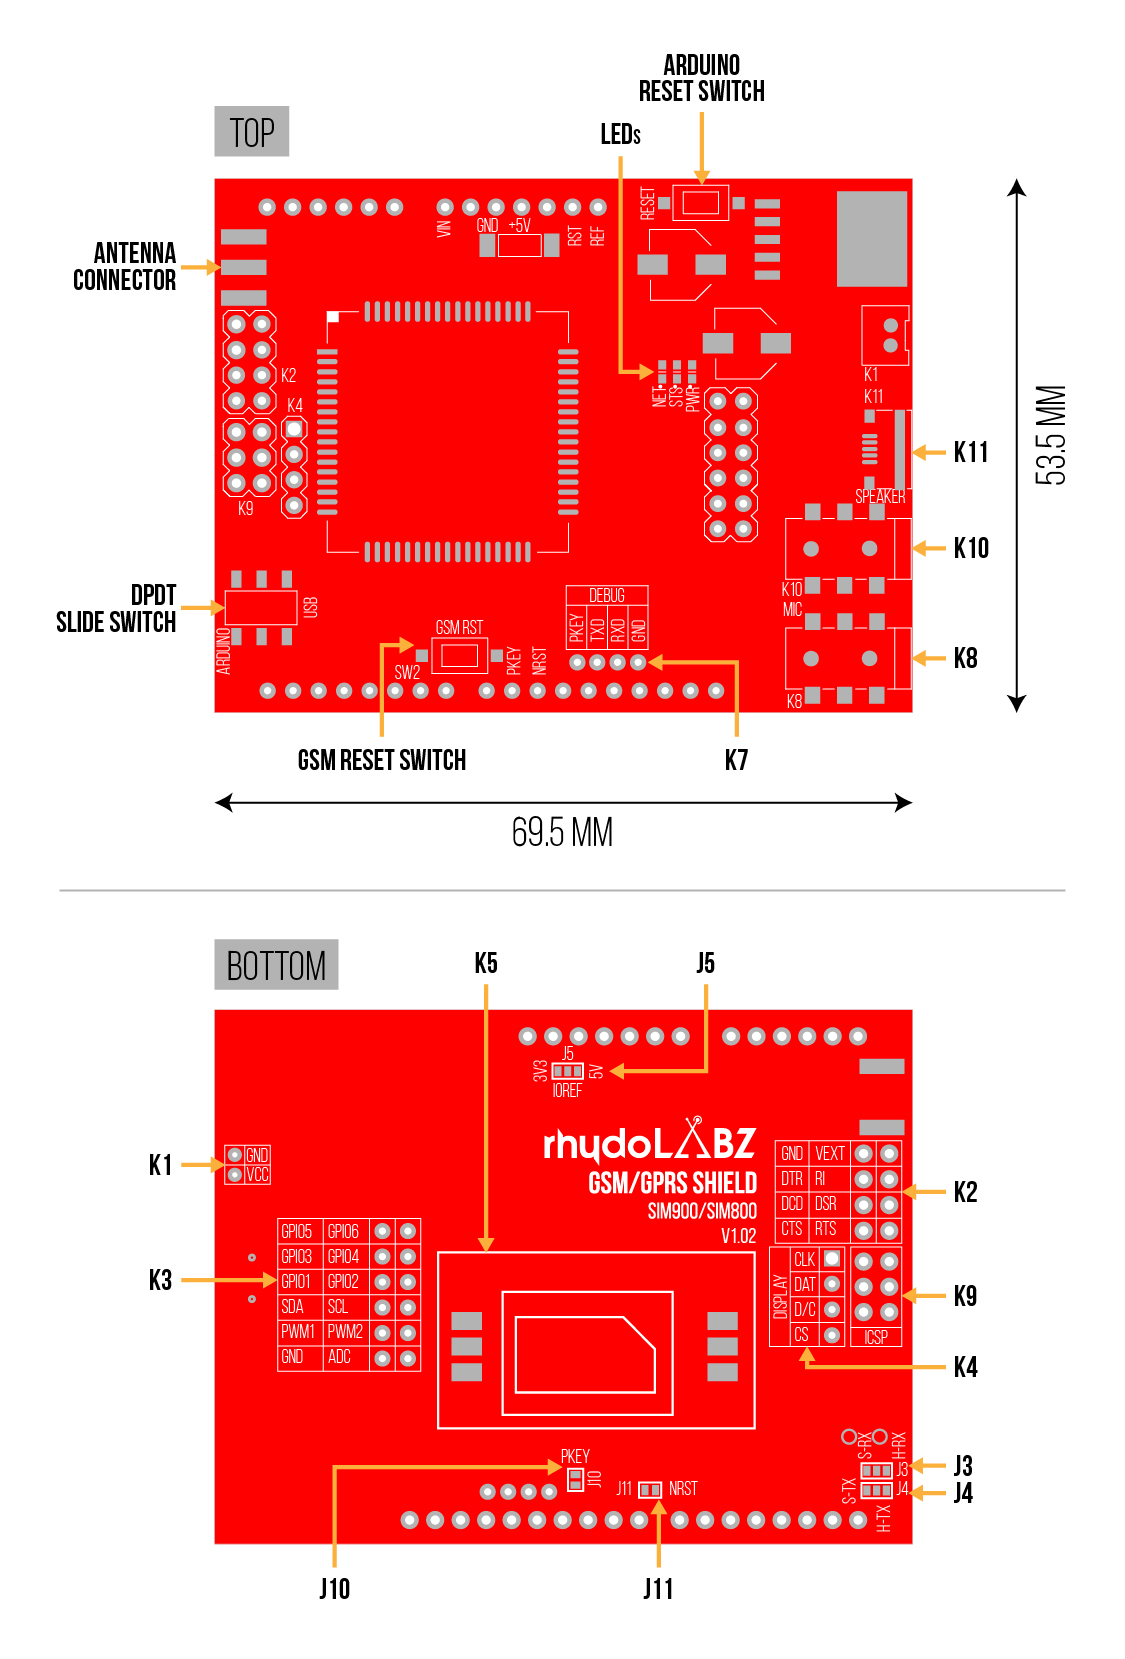 How to interface GSM/GPRS Shield (SIM900A/SIM900/SIM800) To an Arduino